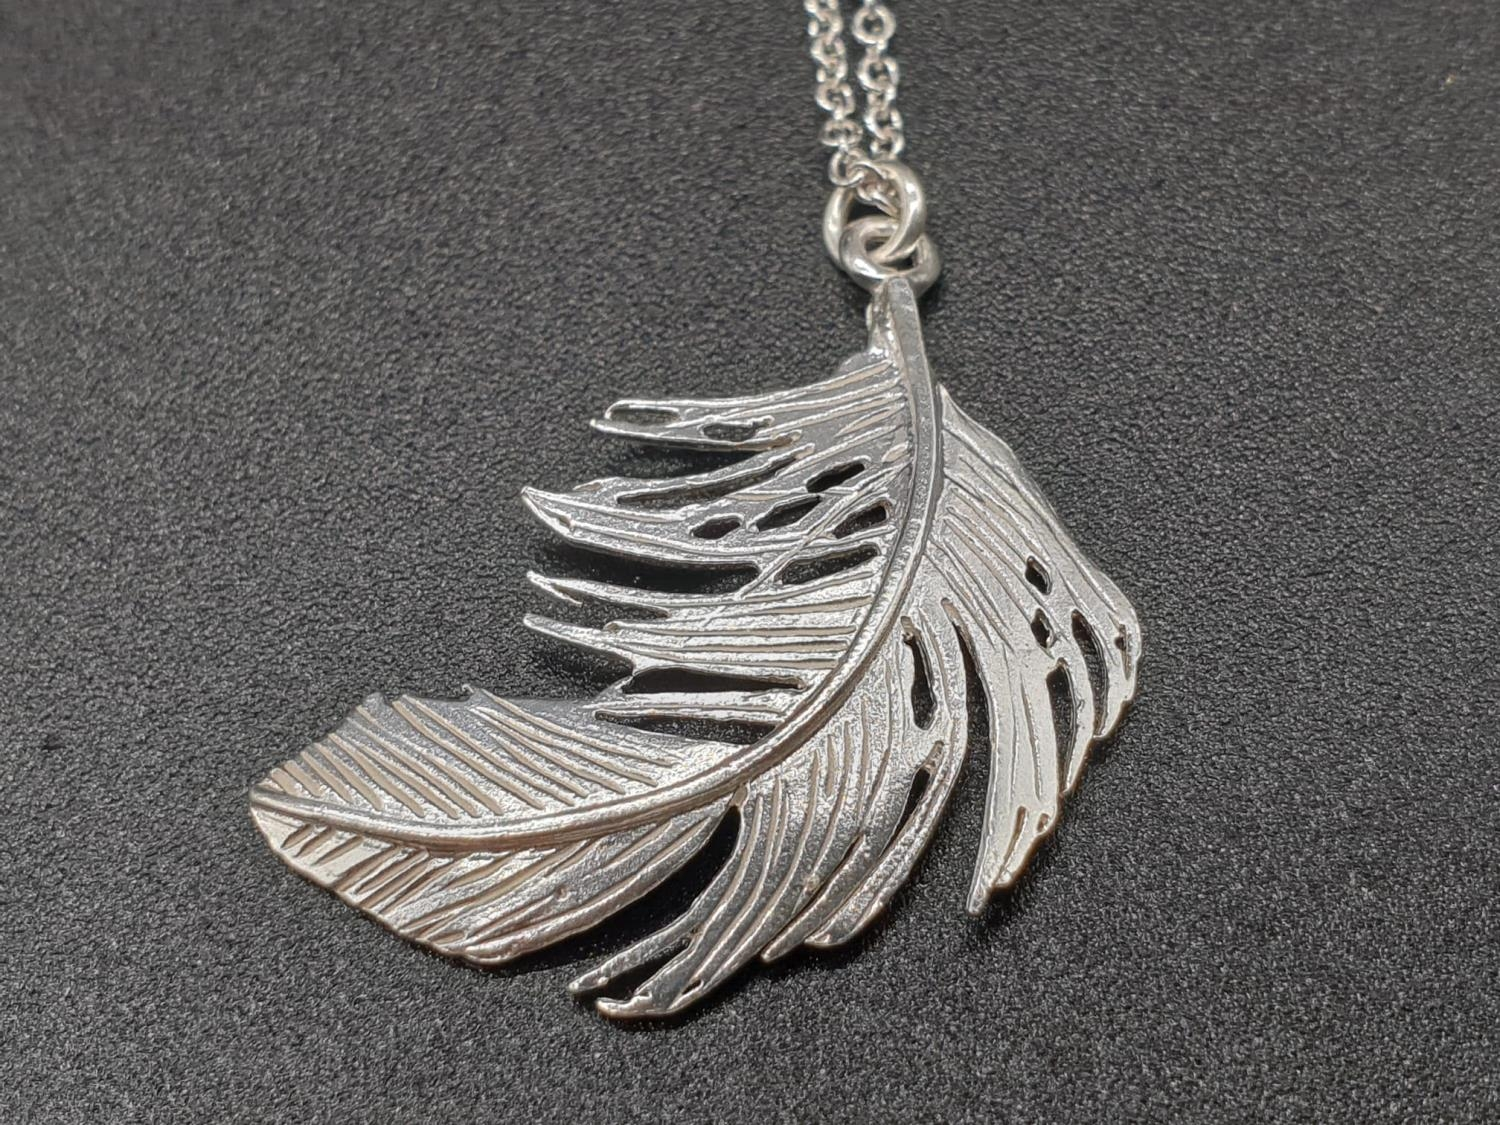 ALEX MONROE STERLING SILVER BIG FEATHER PENDANT ON EXTENDABLE NECKLACE - Image 3 of 6